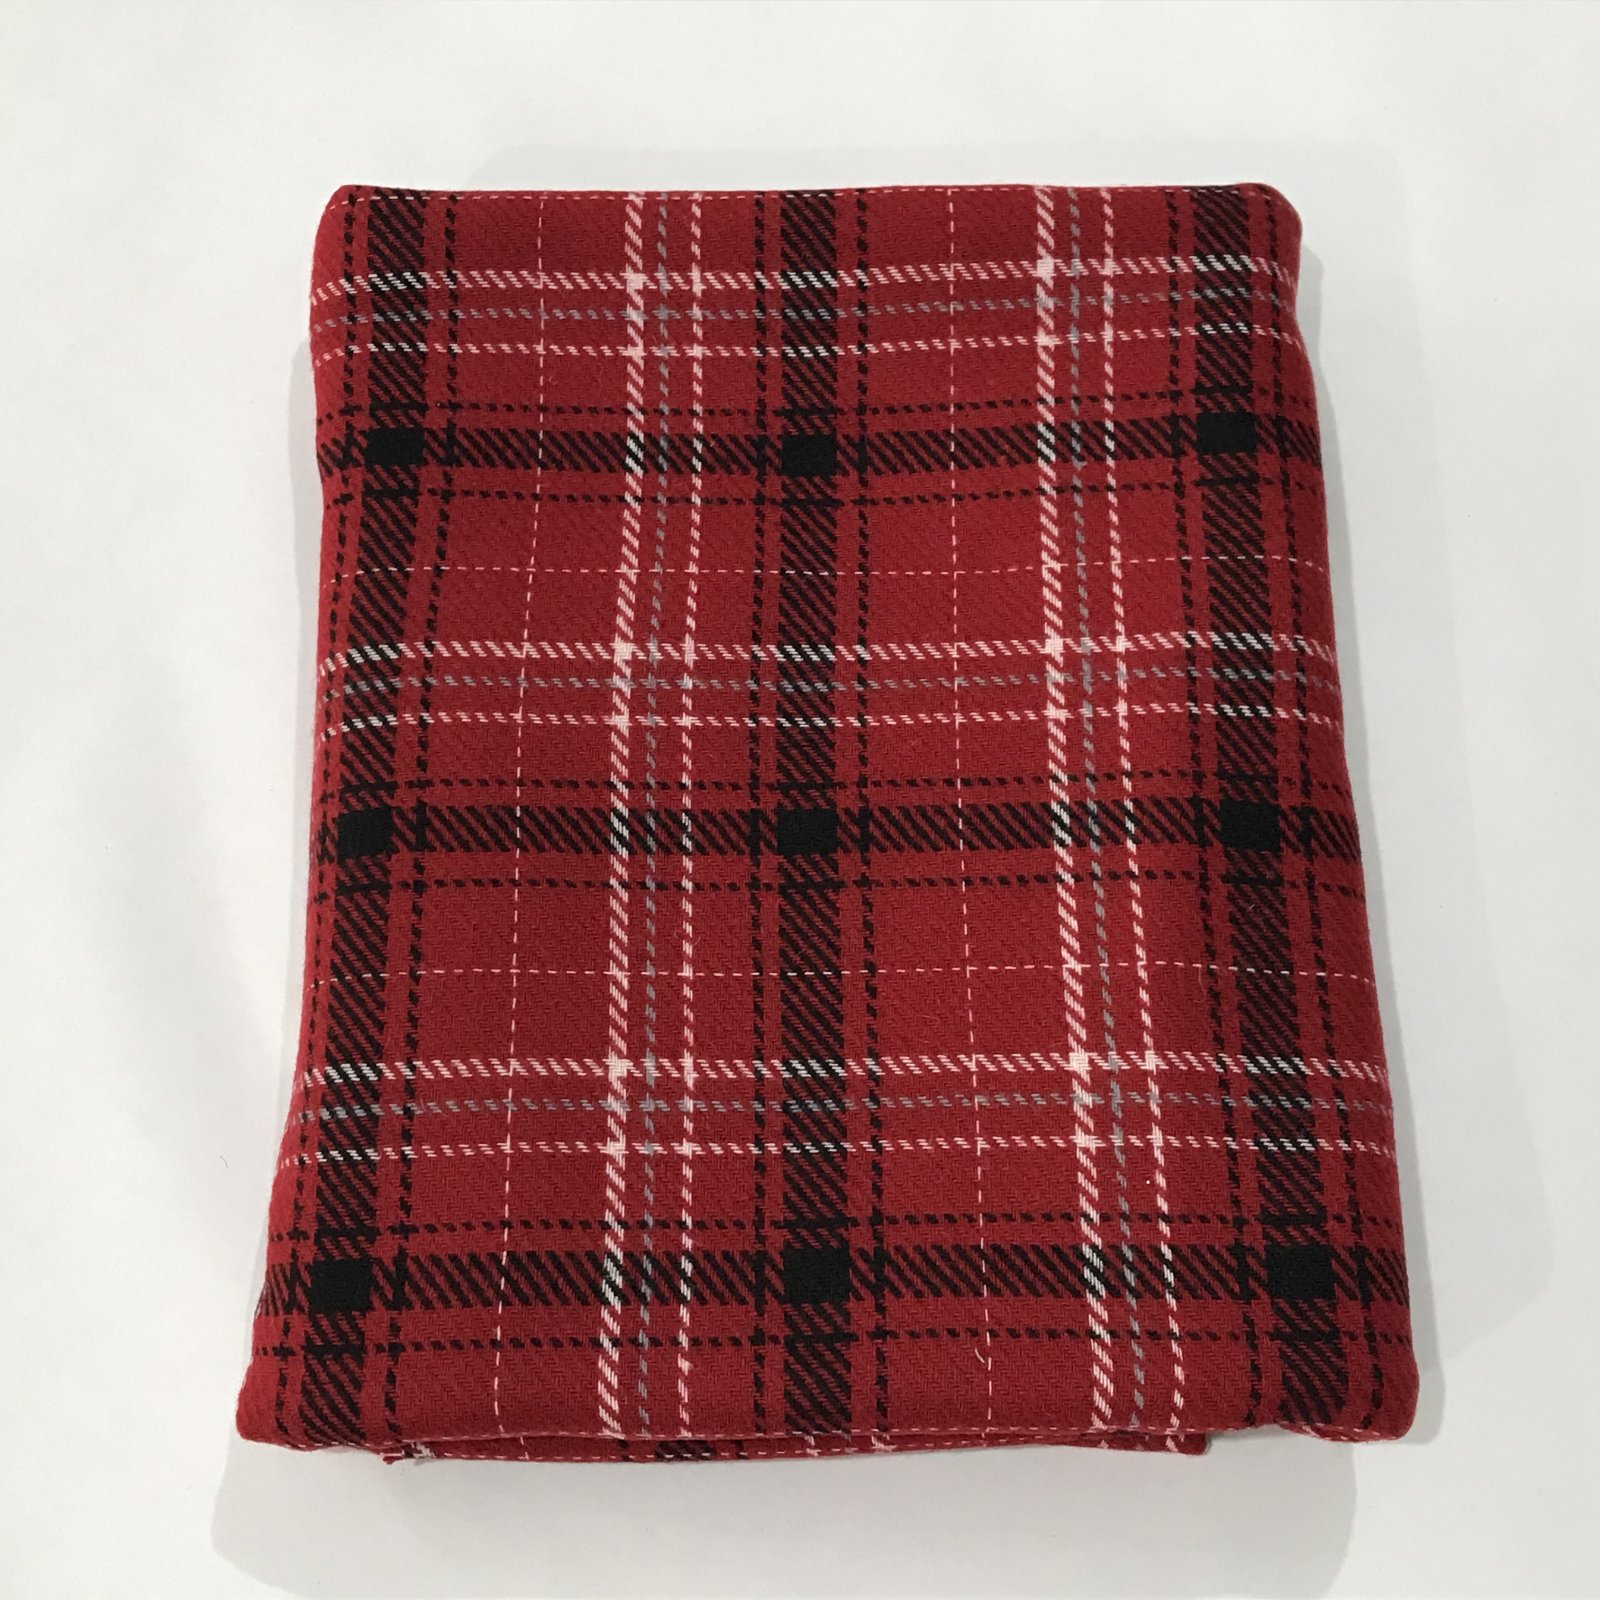 Plaid Wool Blend - Red/White/Black/Gray - 1 yard + 35 inches